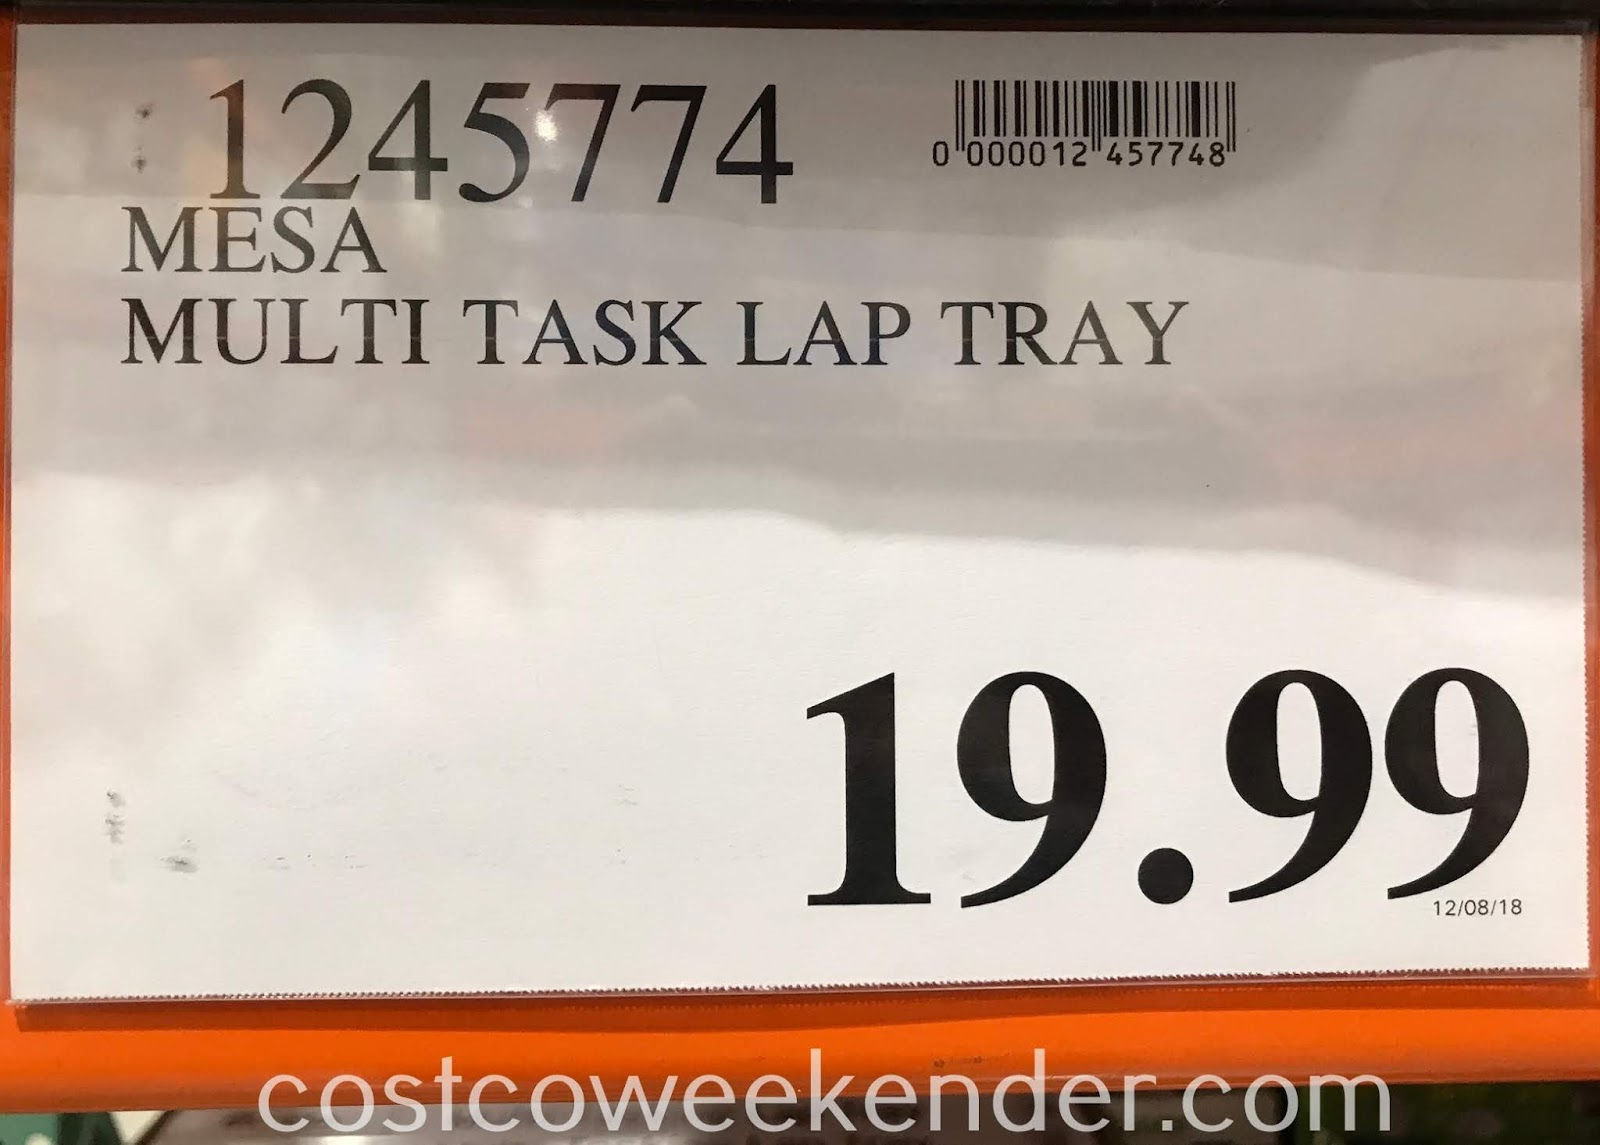 Deal for the Mesa Multi-Tasking Lap Tray at Costco